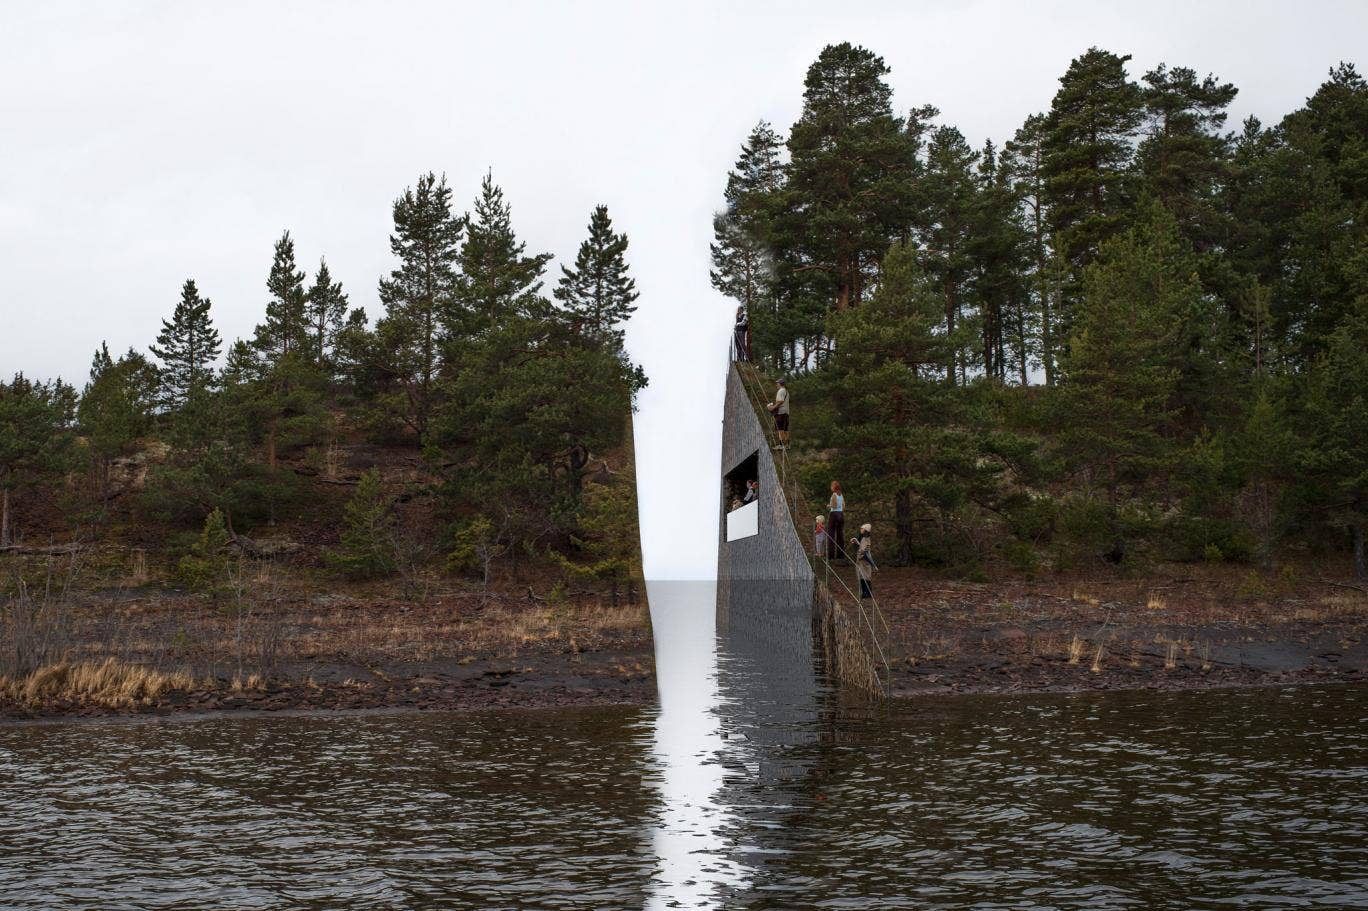 Artist Dahlberg proposes cutting a one thousand cubic meter slice out of the rock, from the mainland at Soerbraaten near Utoya site of the mass killings of  Anders Behring Breivik leaving a permanent scar on the landscape. The rubble collected will then b